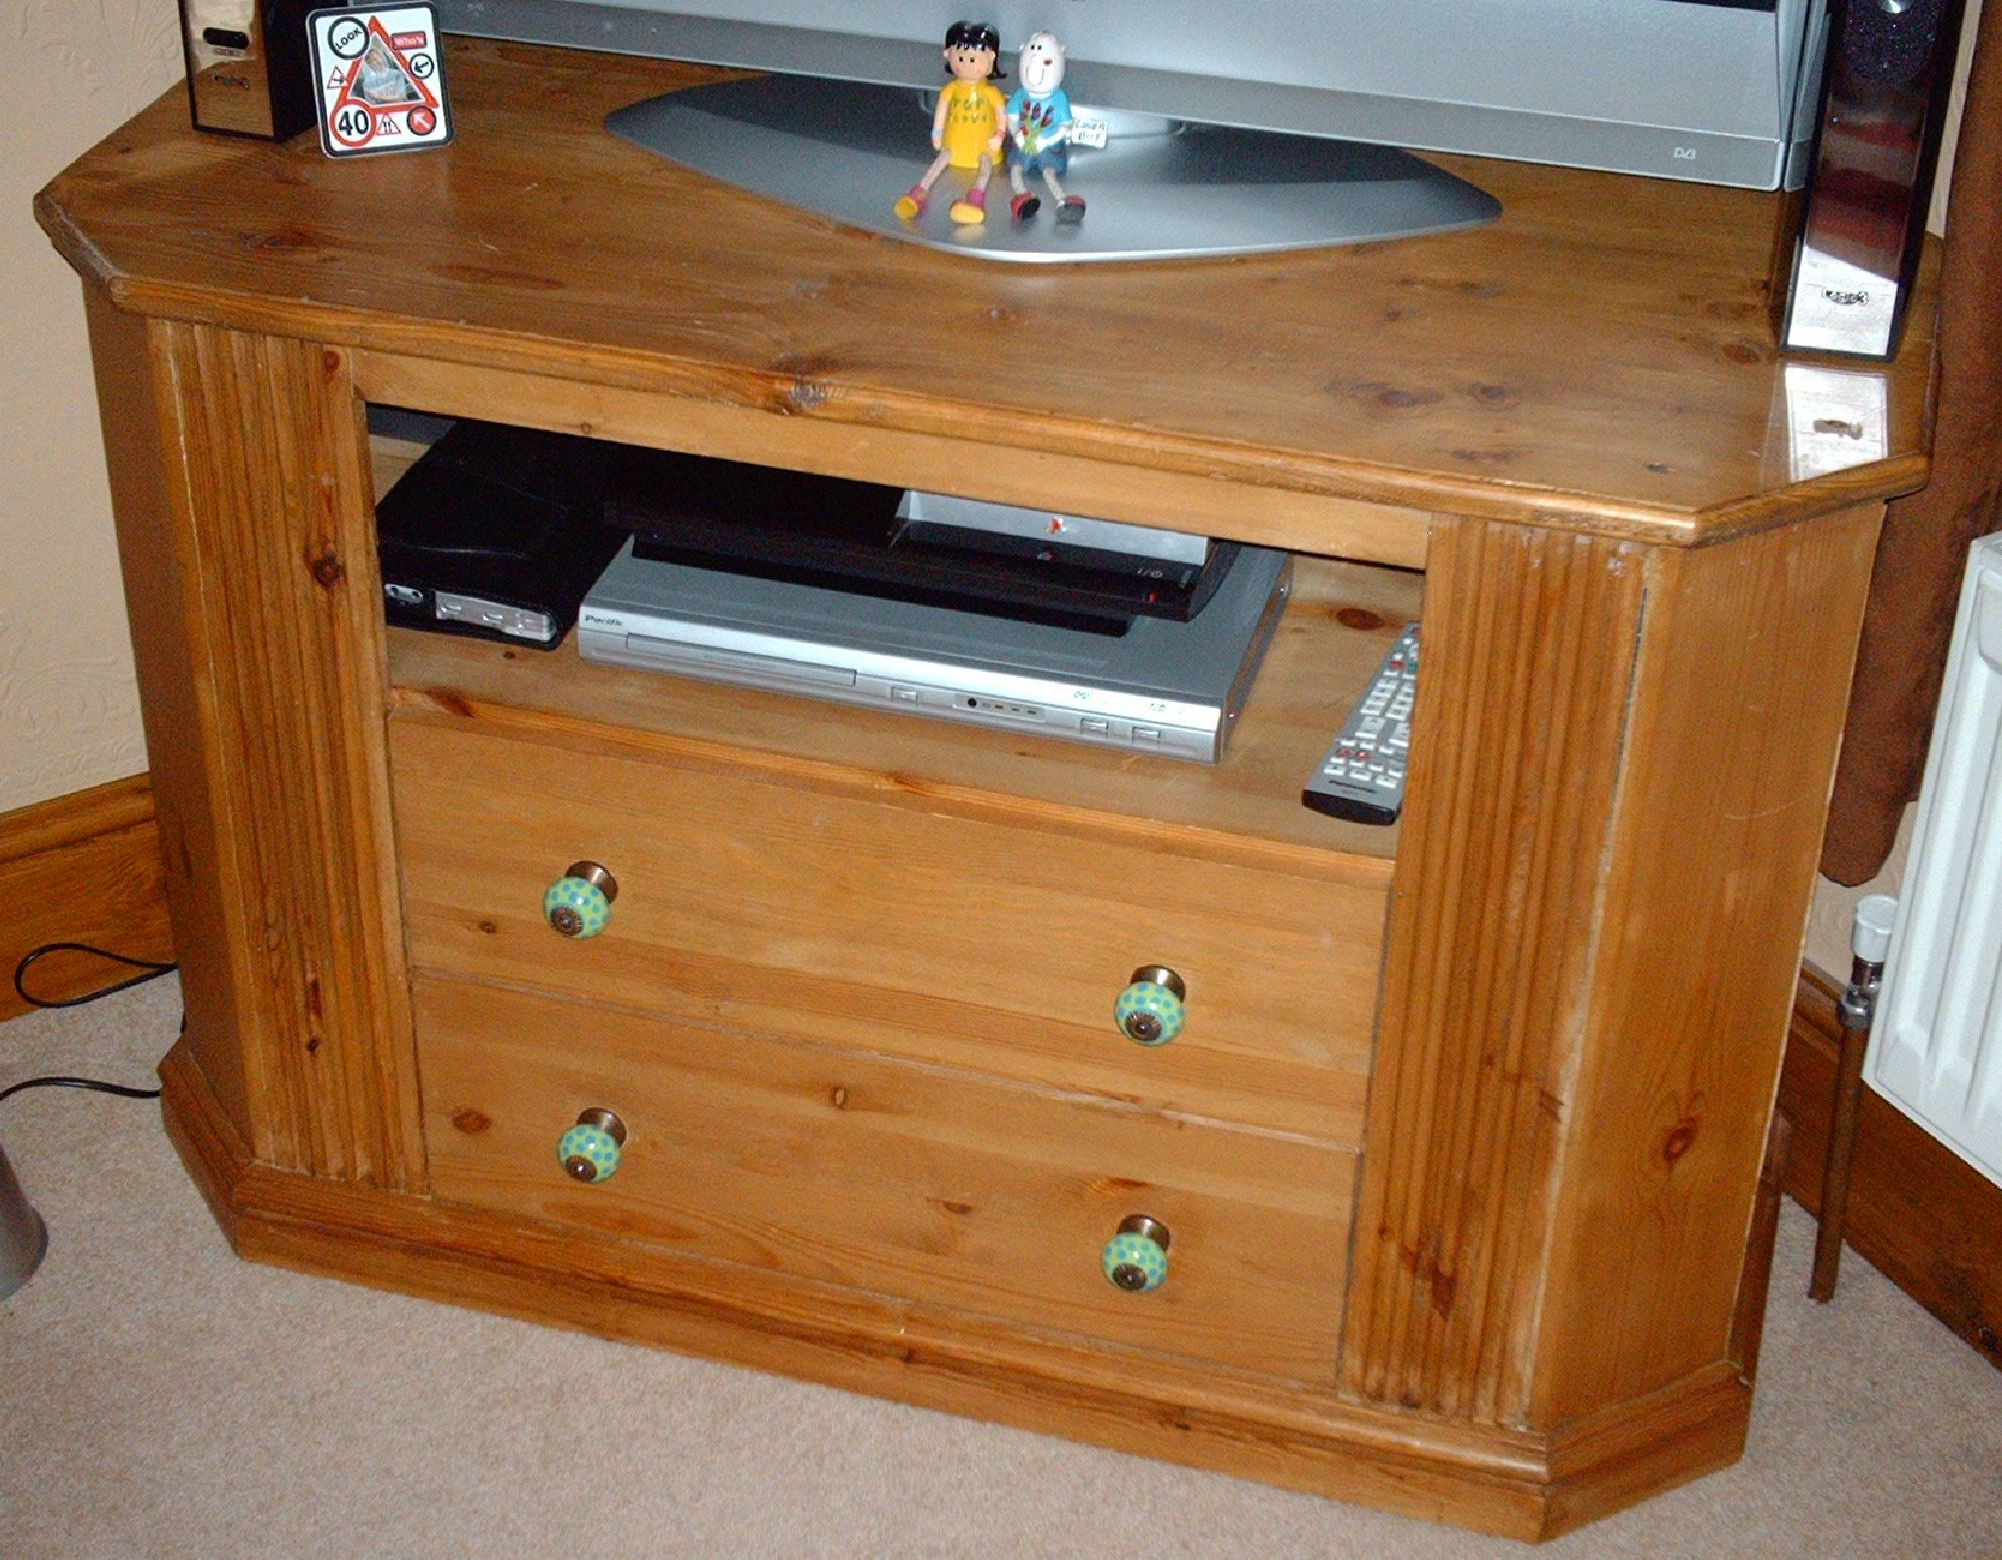 TV STAND WITH 2 DVD DRAWERS - PINE.JPG